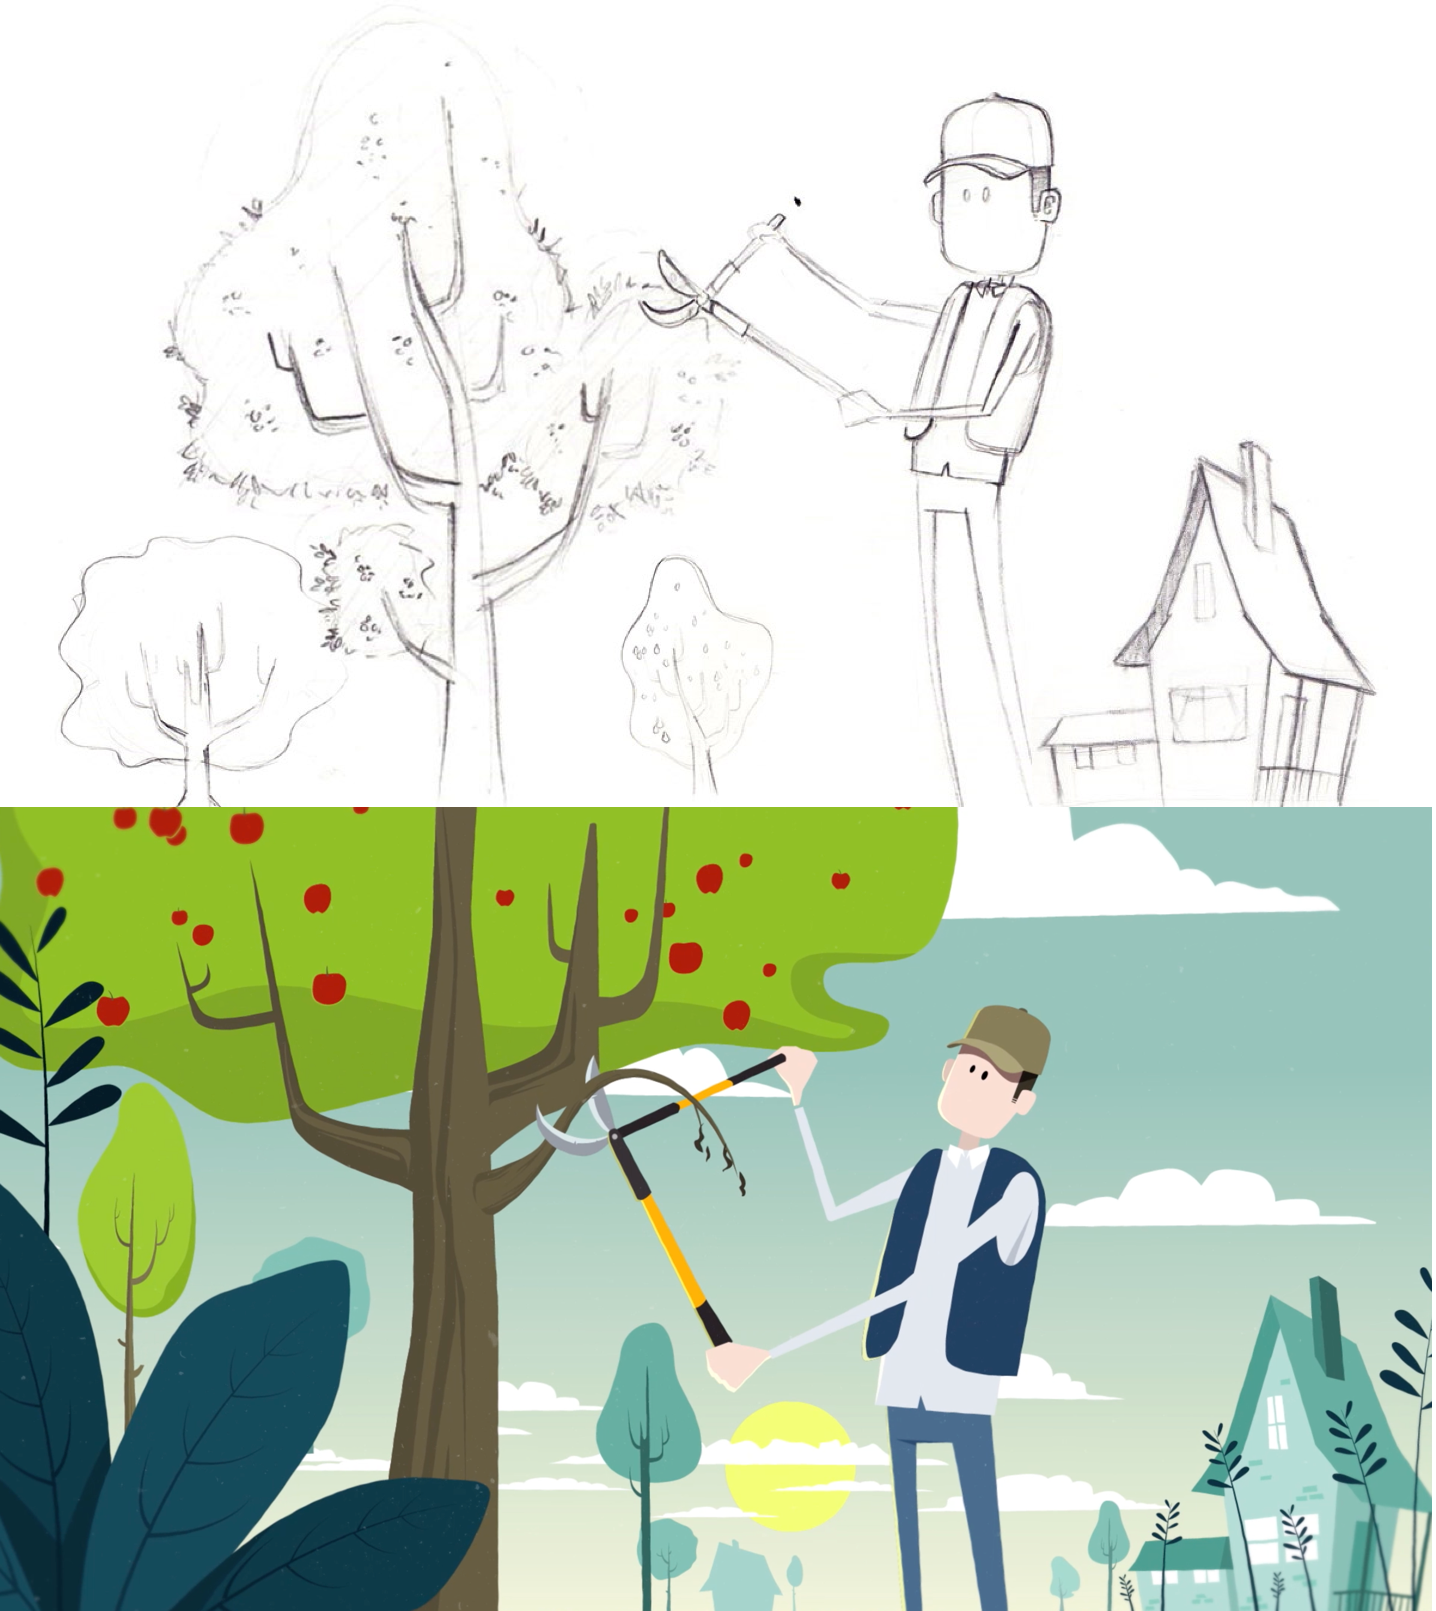 Sketch and illustration taken from a scene from the motion design video about apple trees diseases.